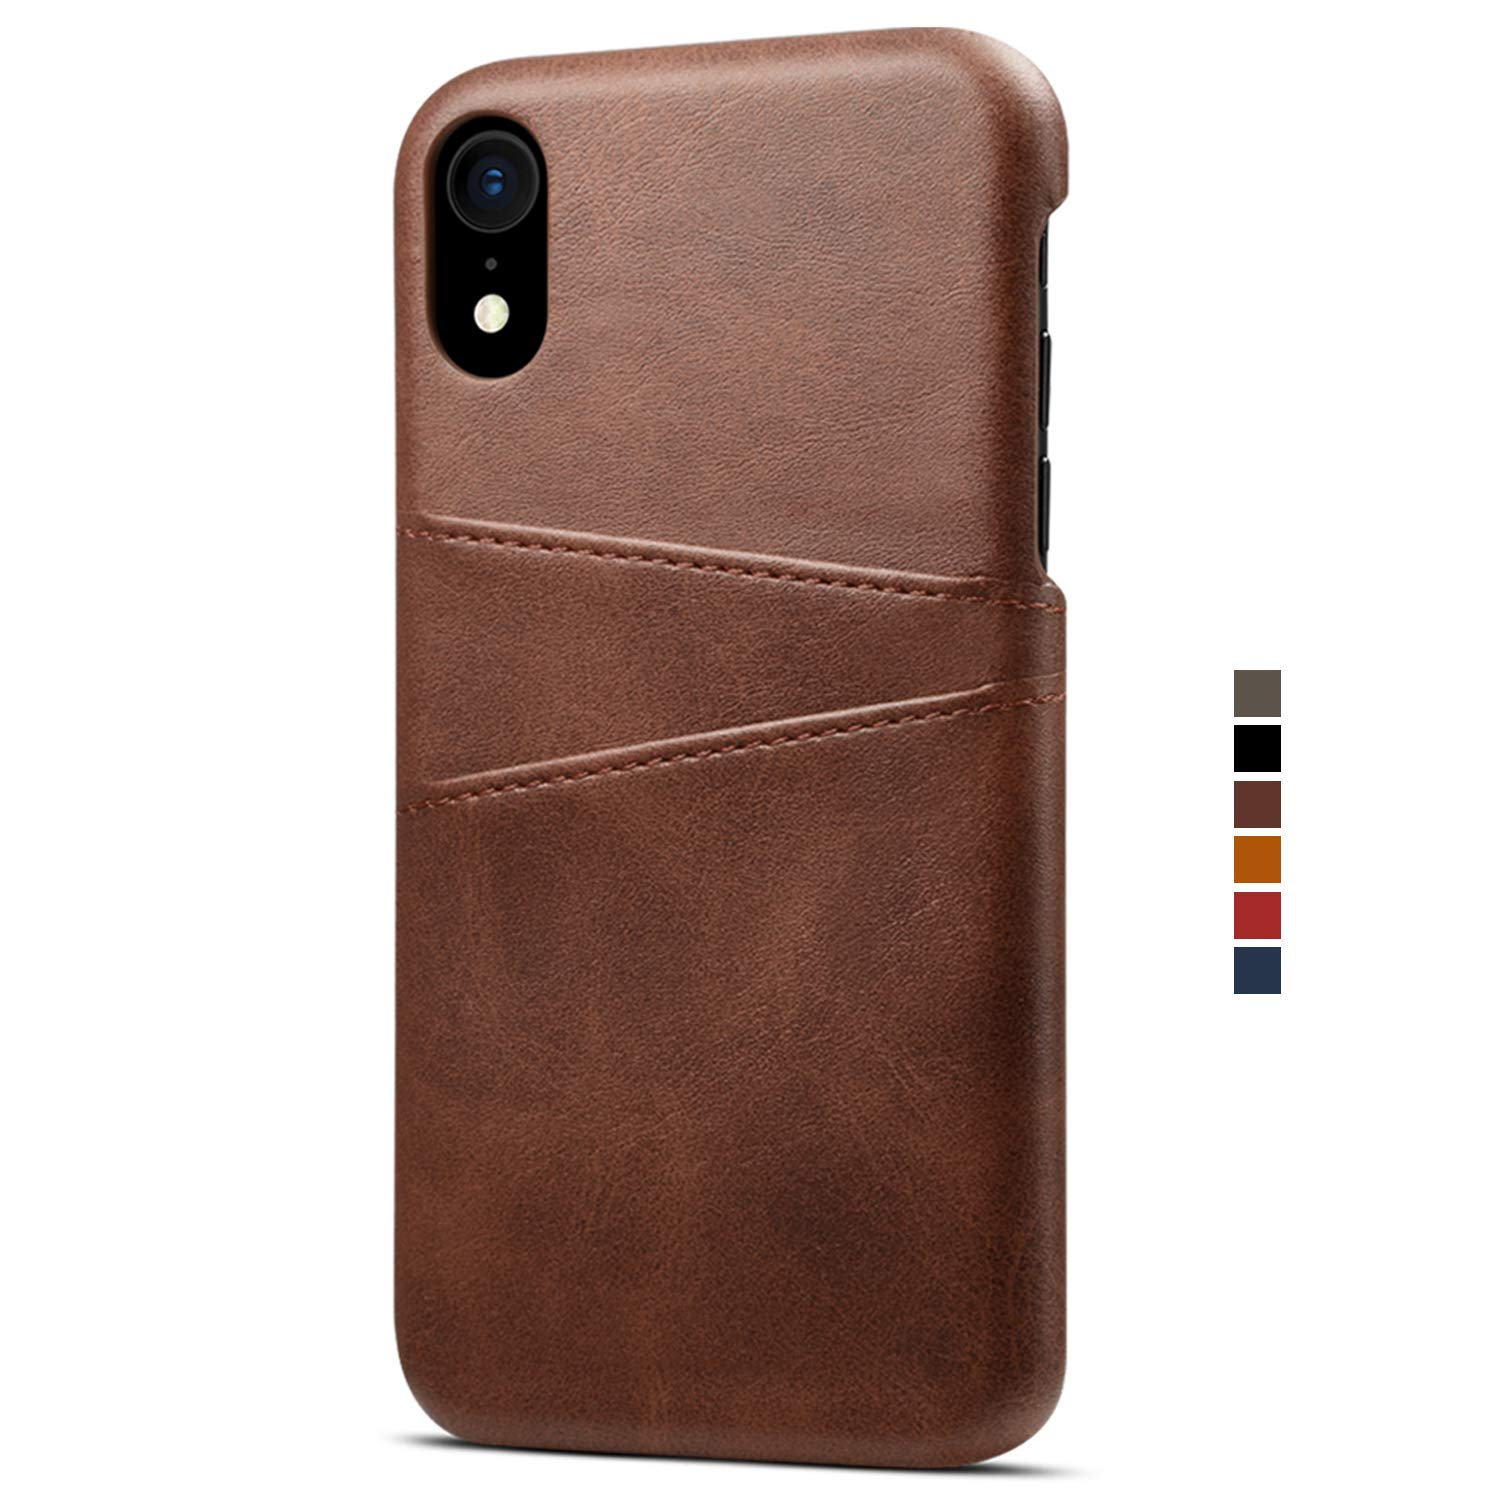 For iphone XS MAX Leather Wallet Phone Case Slim Cover with Card Holder, Red FLY HAWK